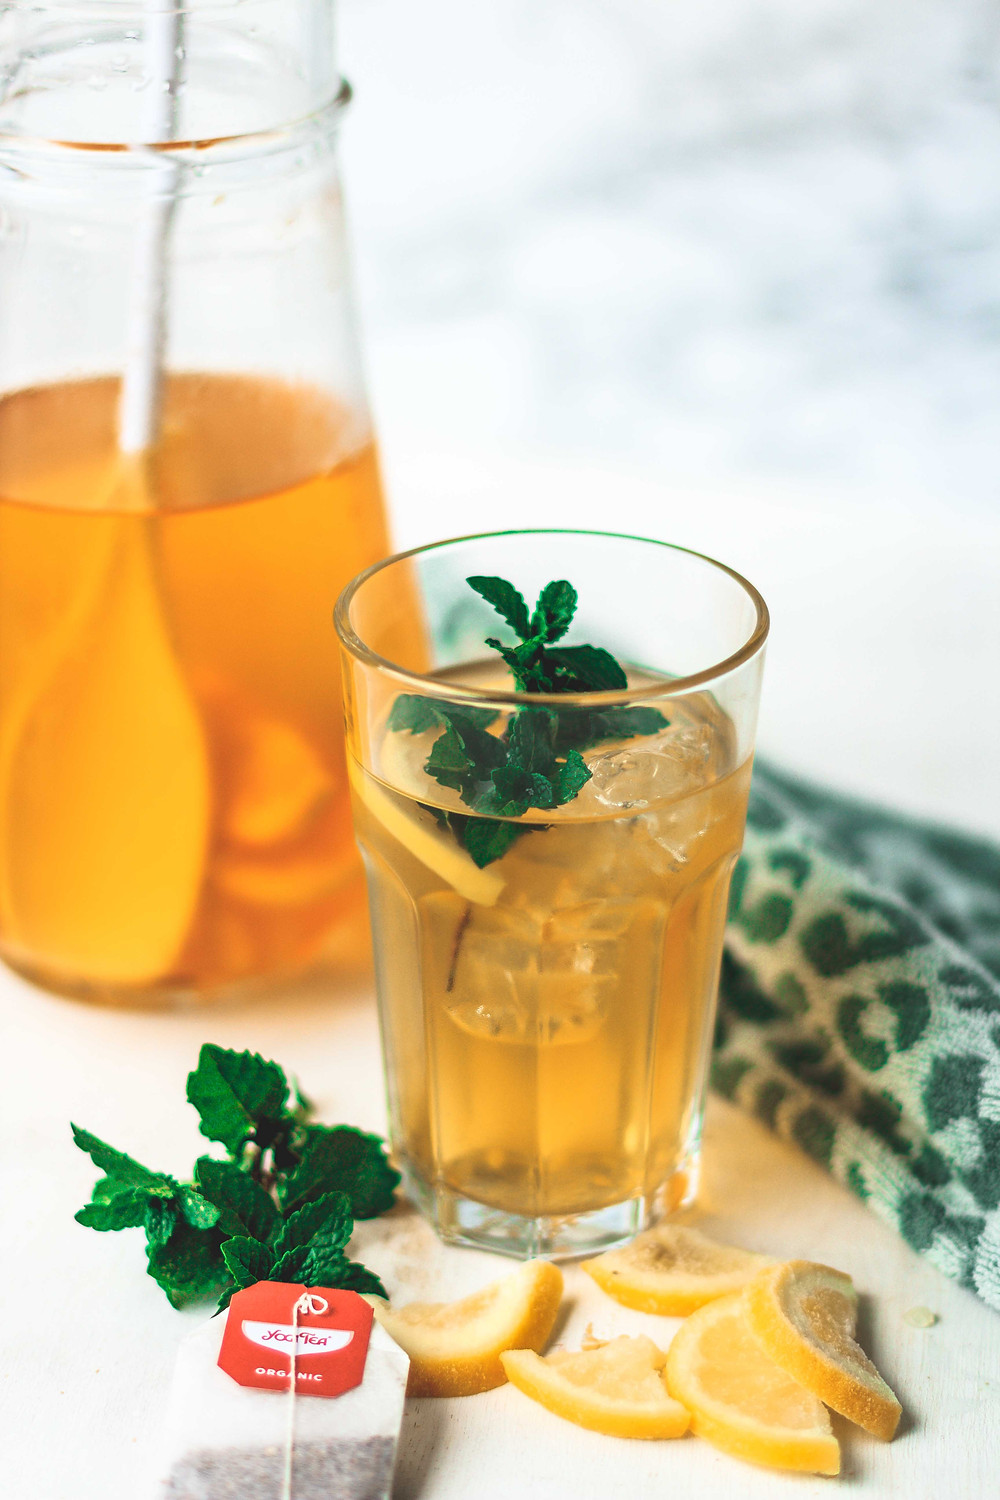 Homemade ice tea green